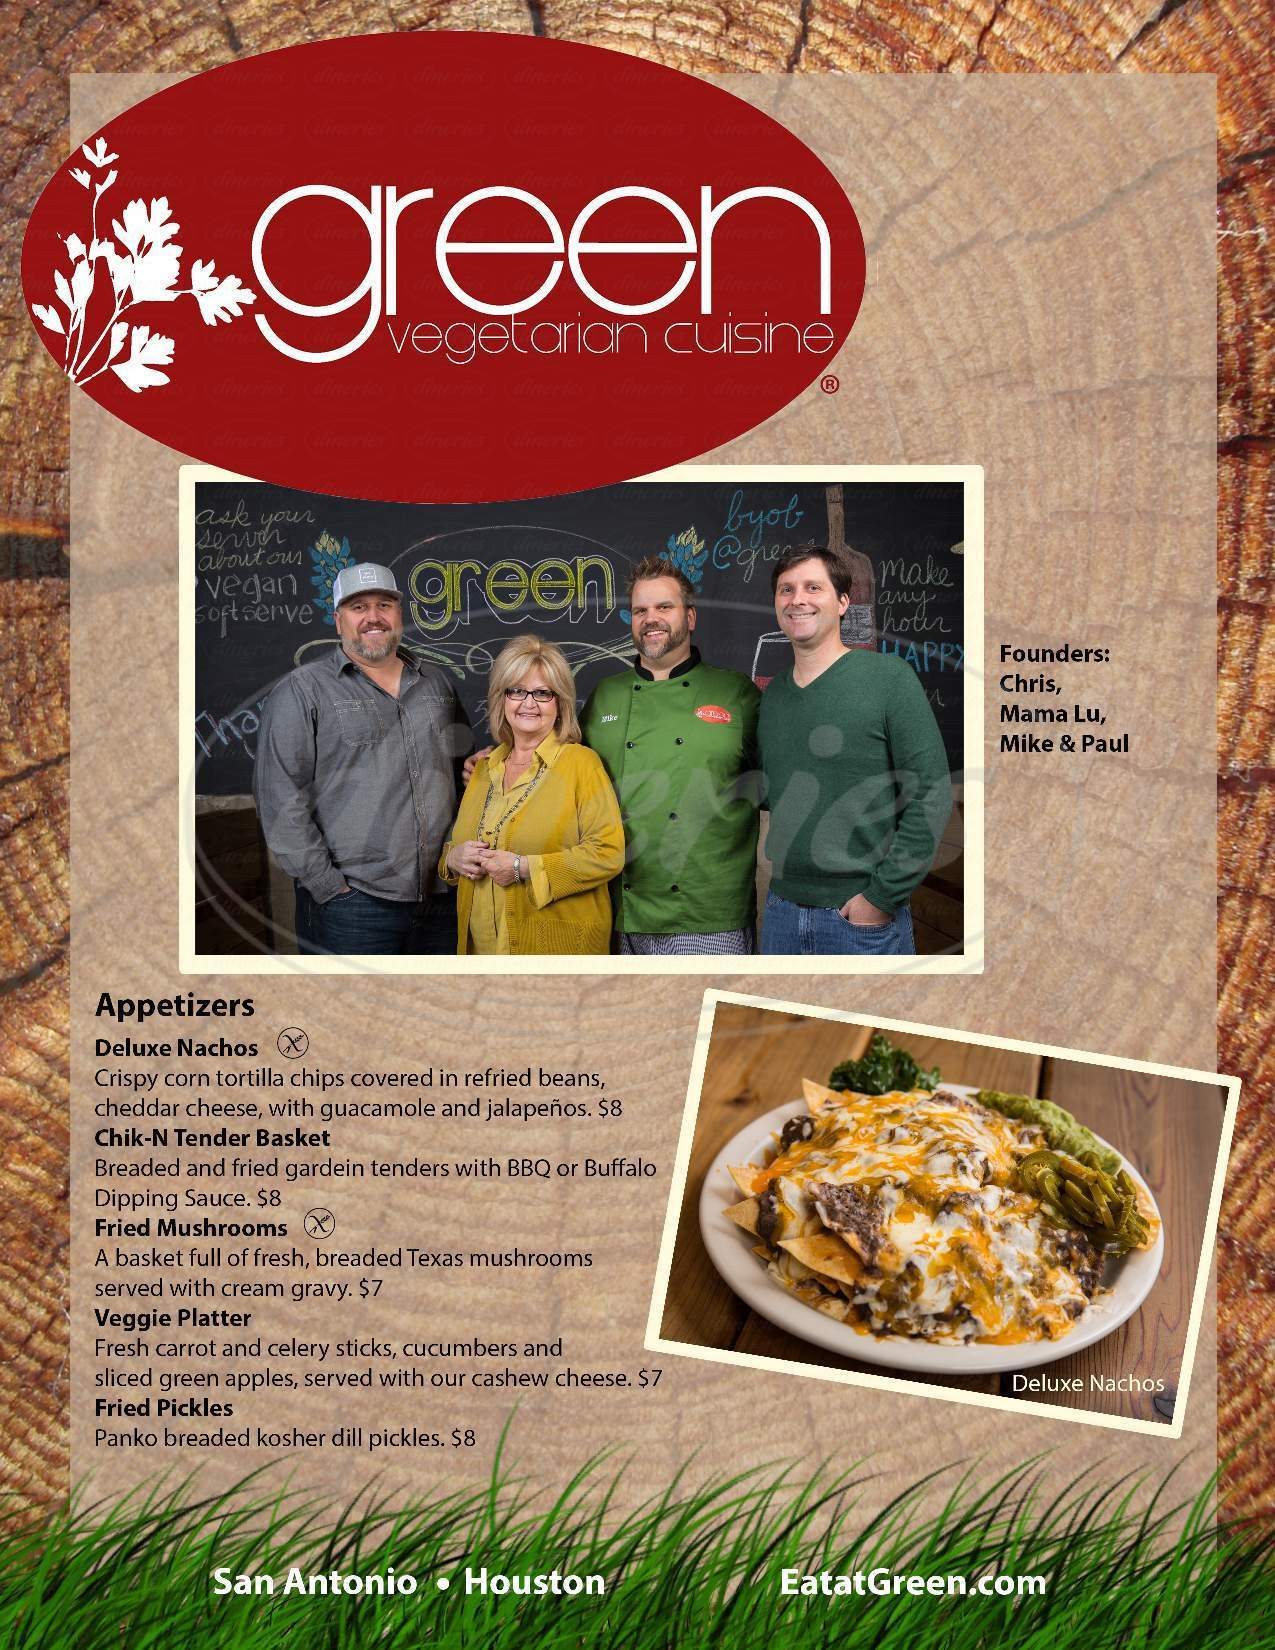 menu for Green Vegetarian Cuisine at Pearl Brewery